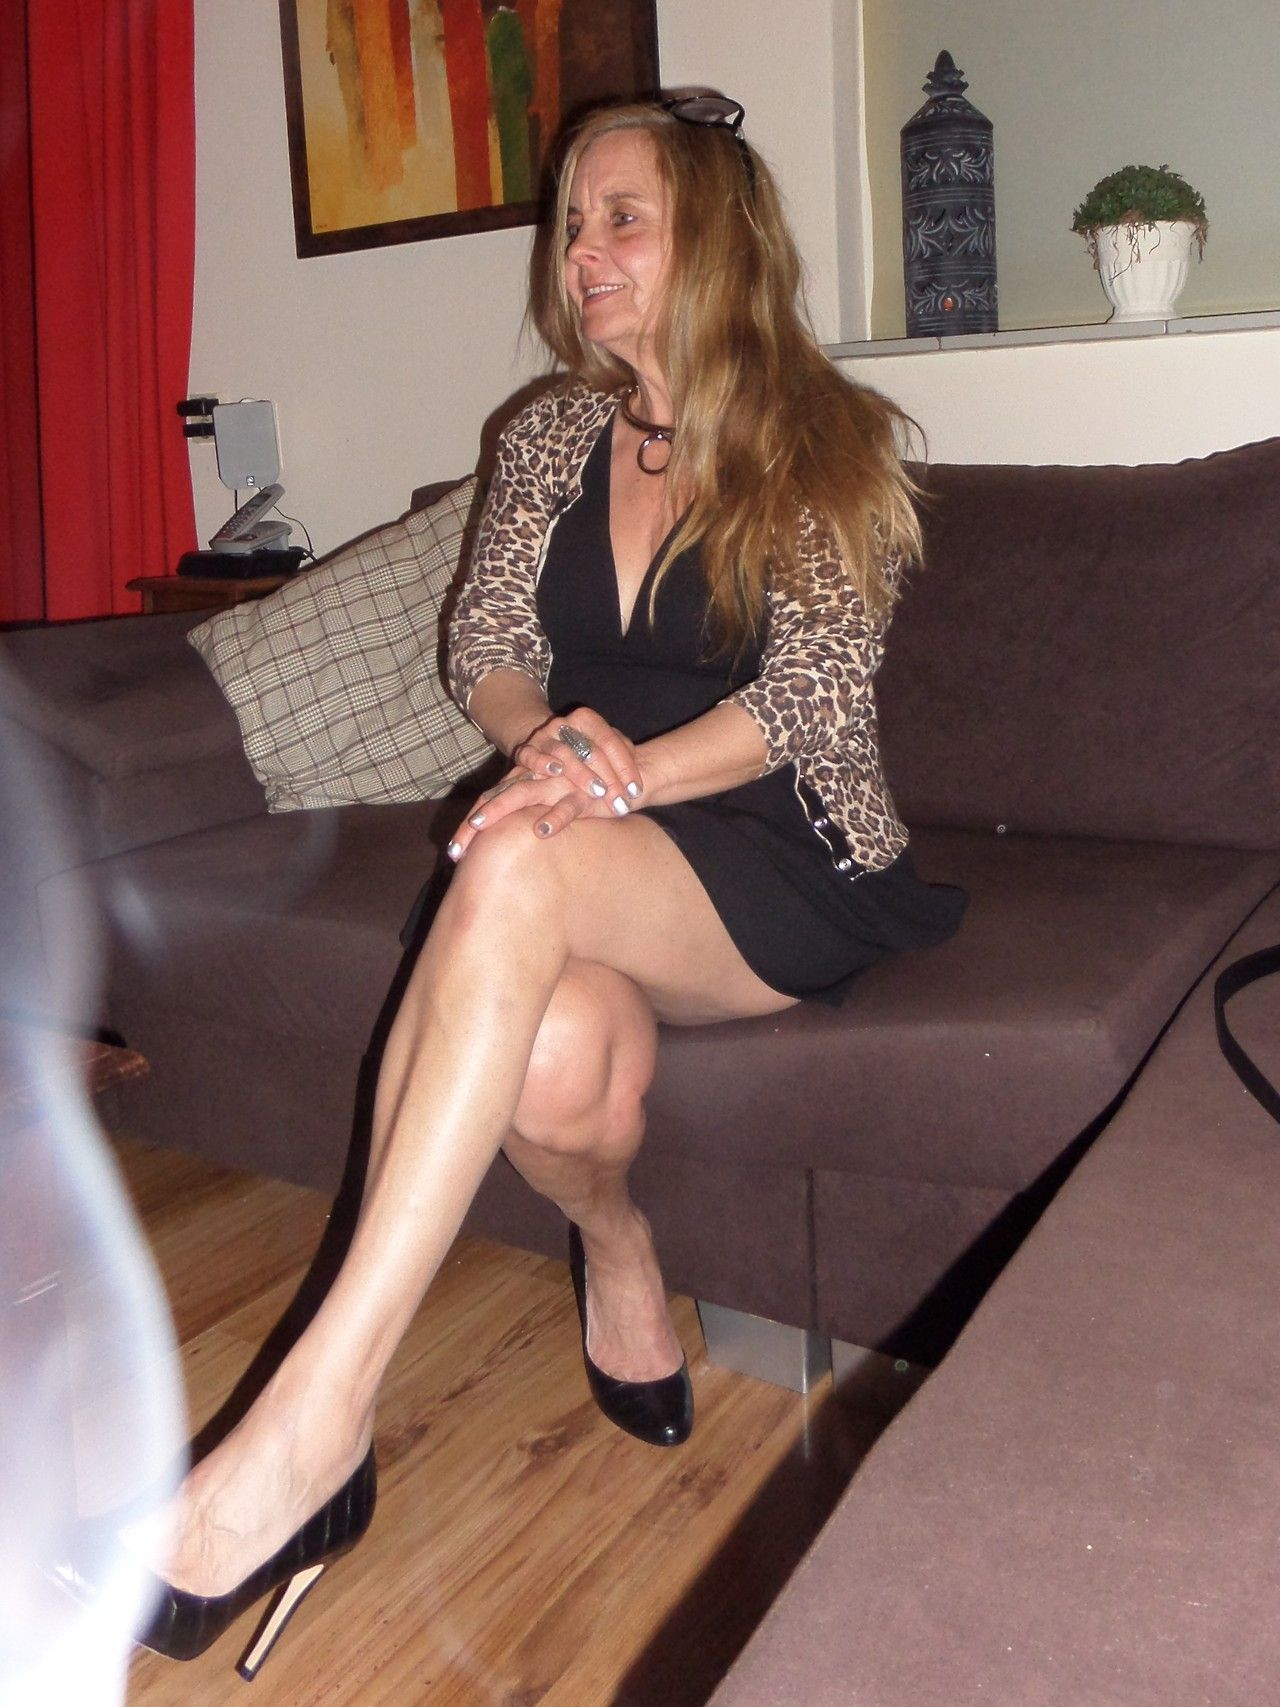 Granny Showing Legs  Mmmmmm In 2019 - Mature Fashion -1232